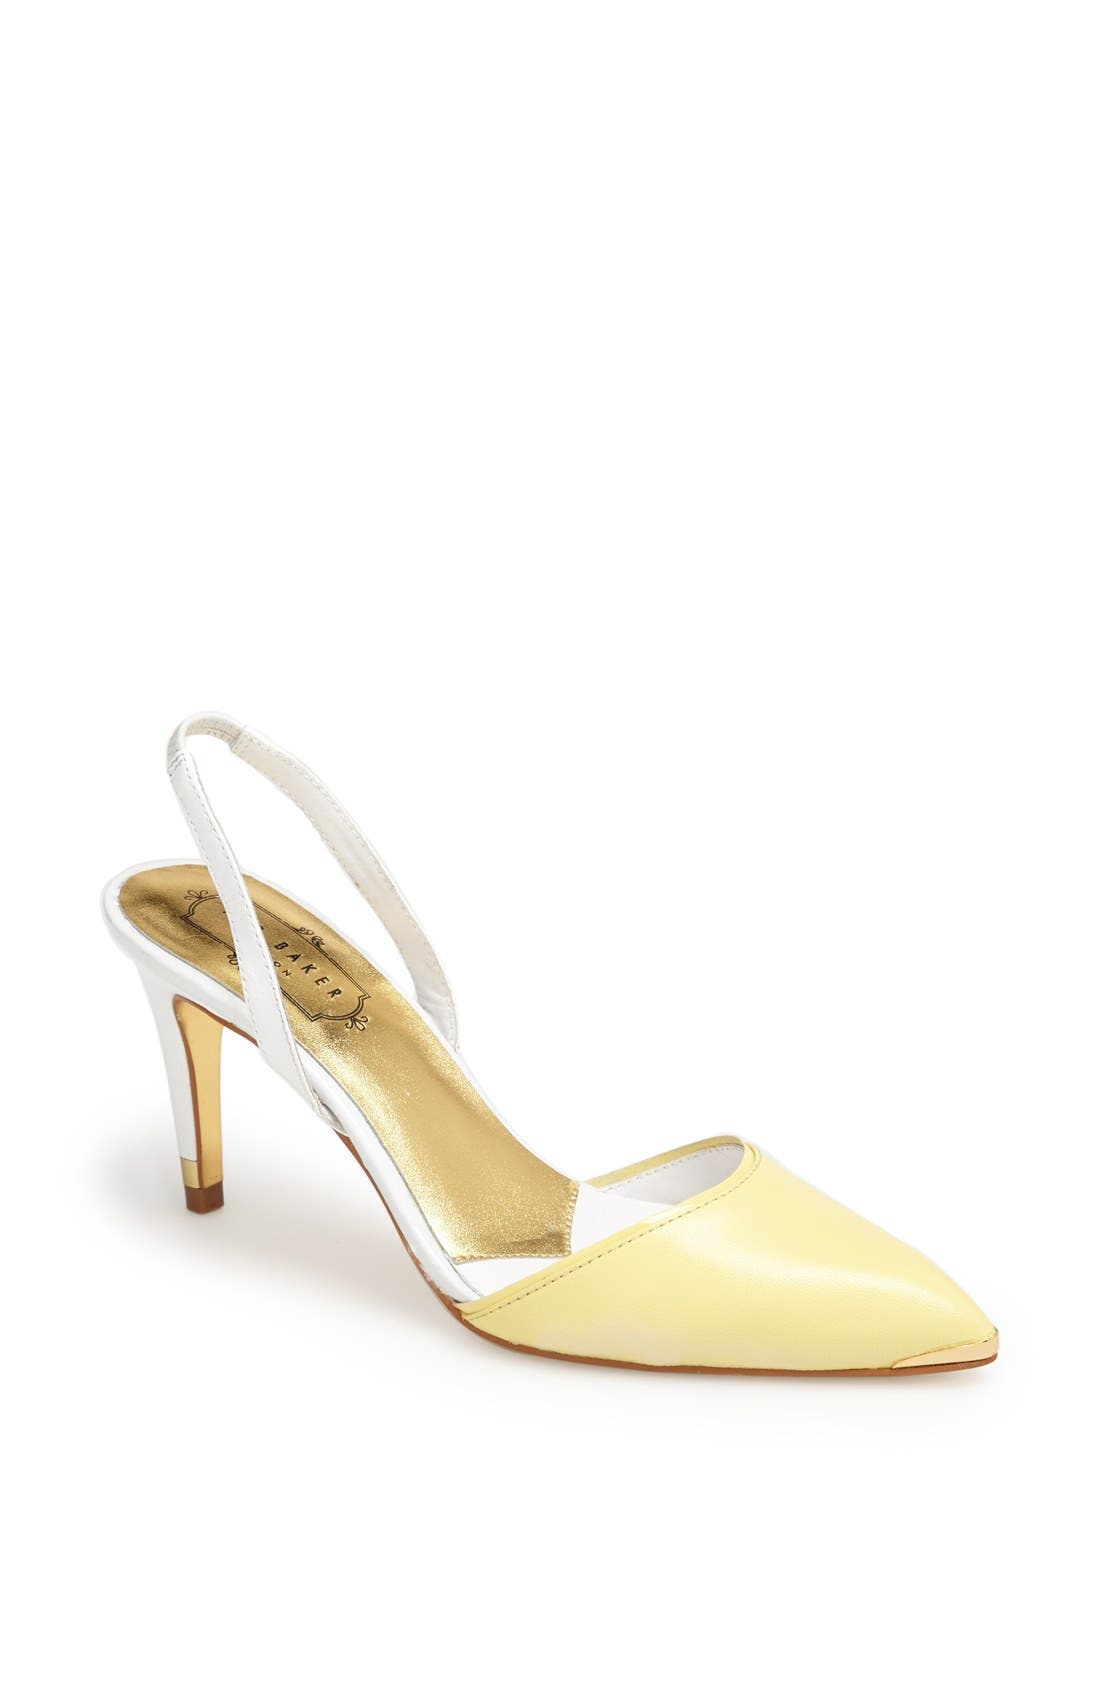 Main Image - Ted Baker London 'Caareen' Slingback Pump